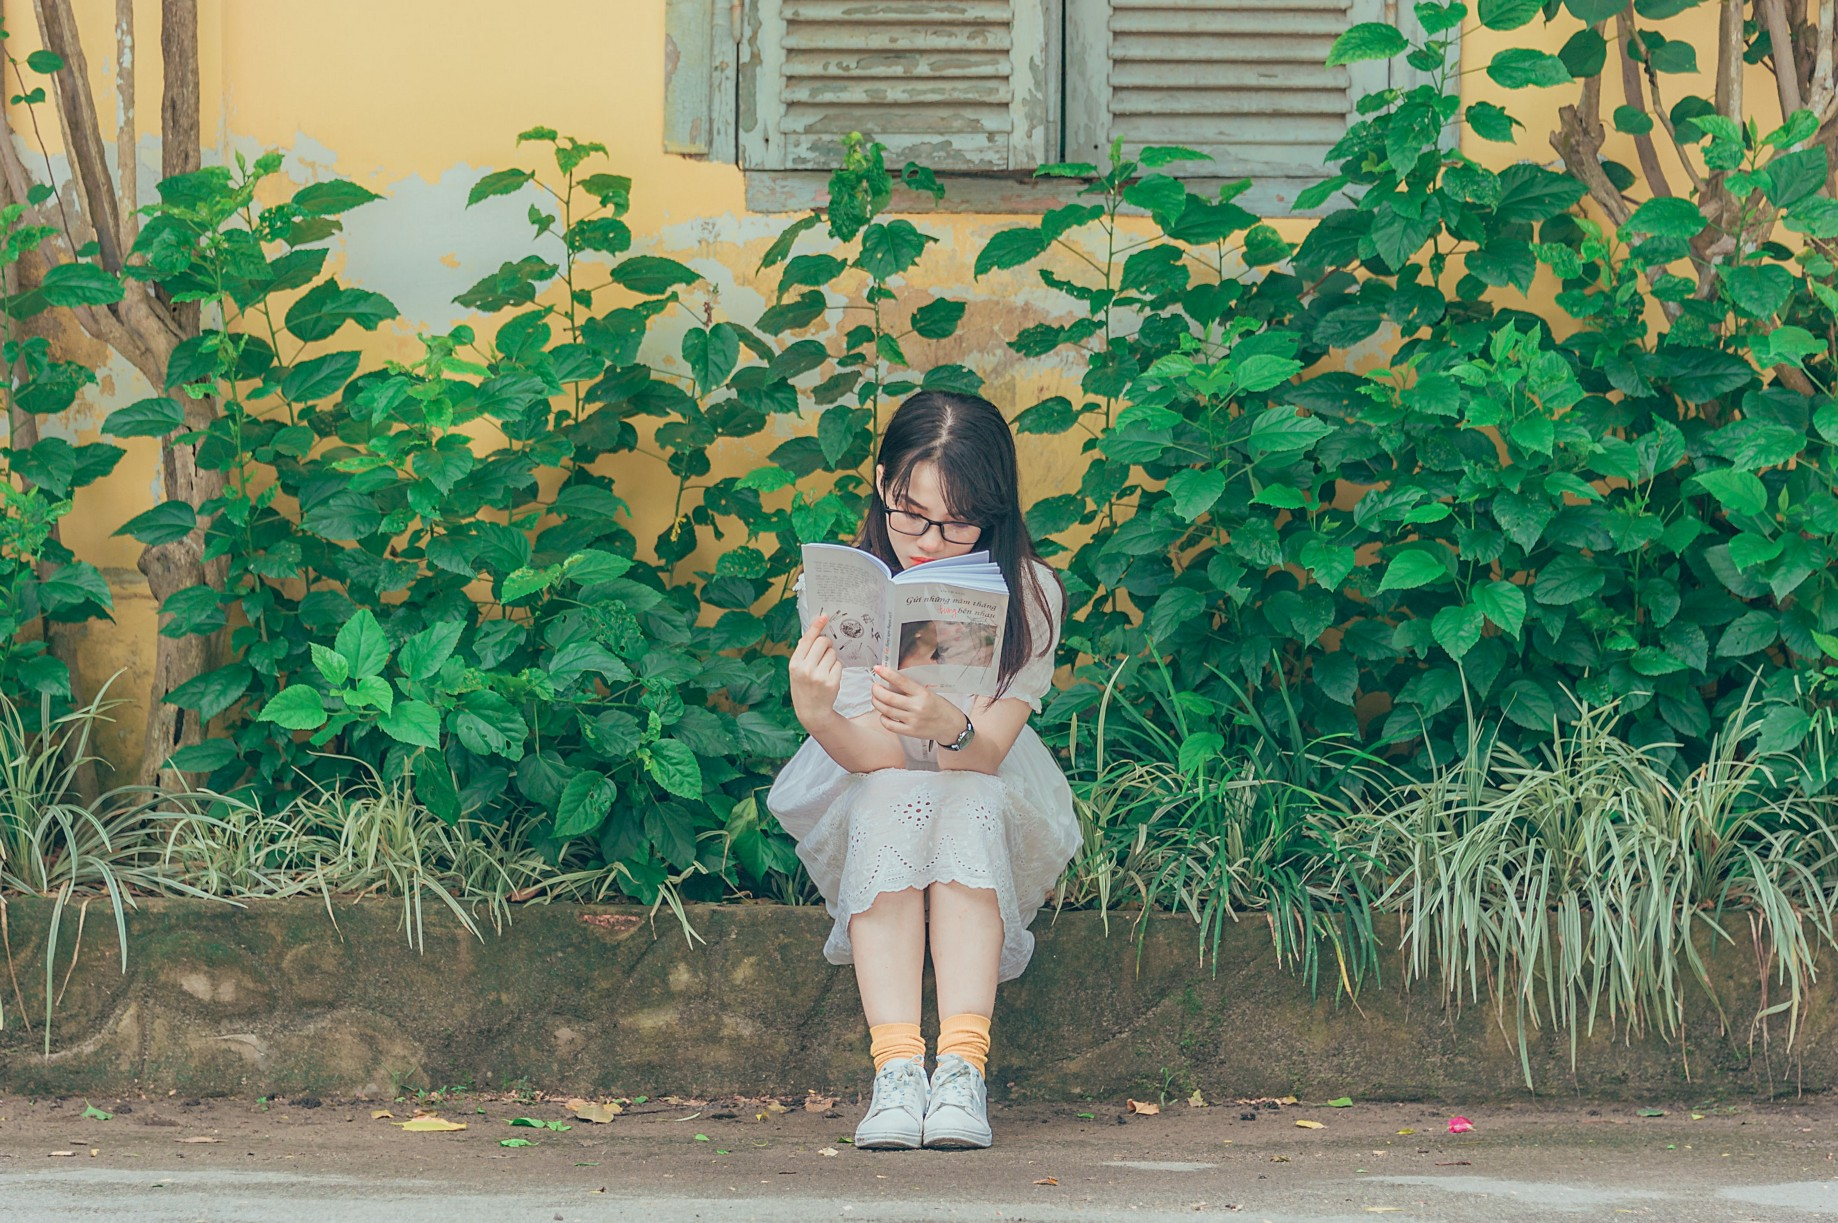 The Emotional Impact of Absent Parents on Children - P S  I Love You